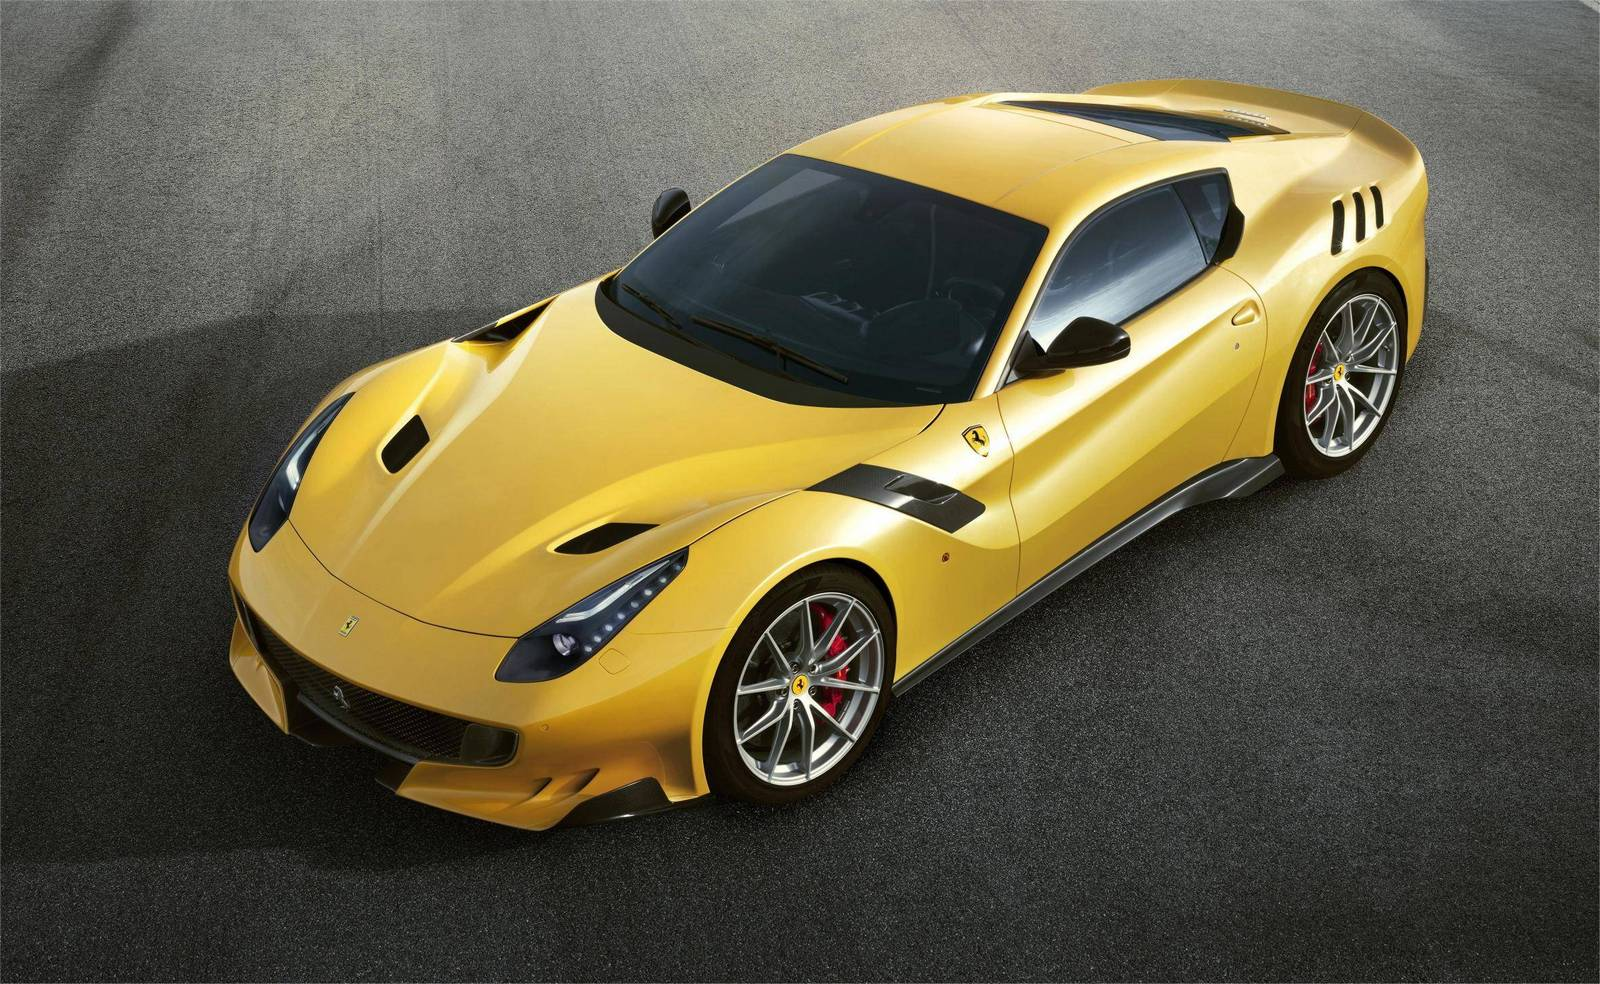 The official presentation of the 2016 Ferrari F12tdf